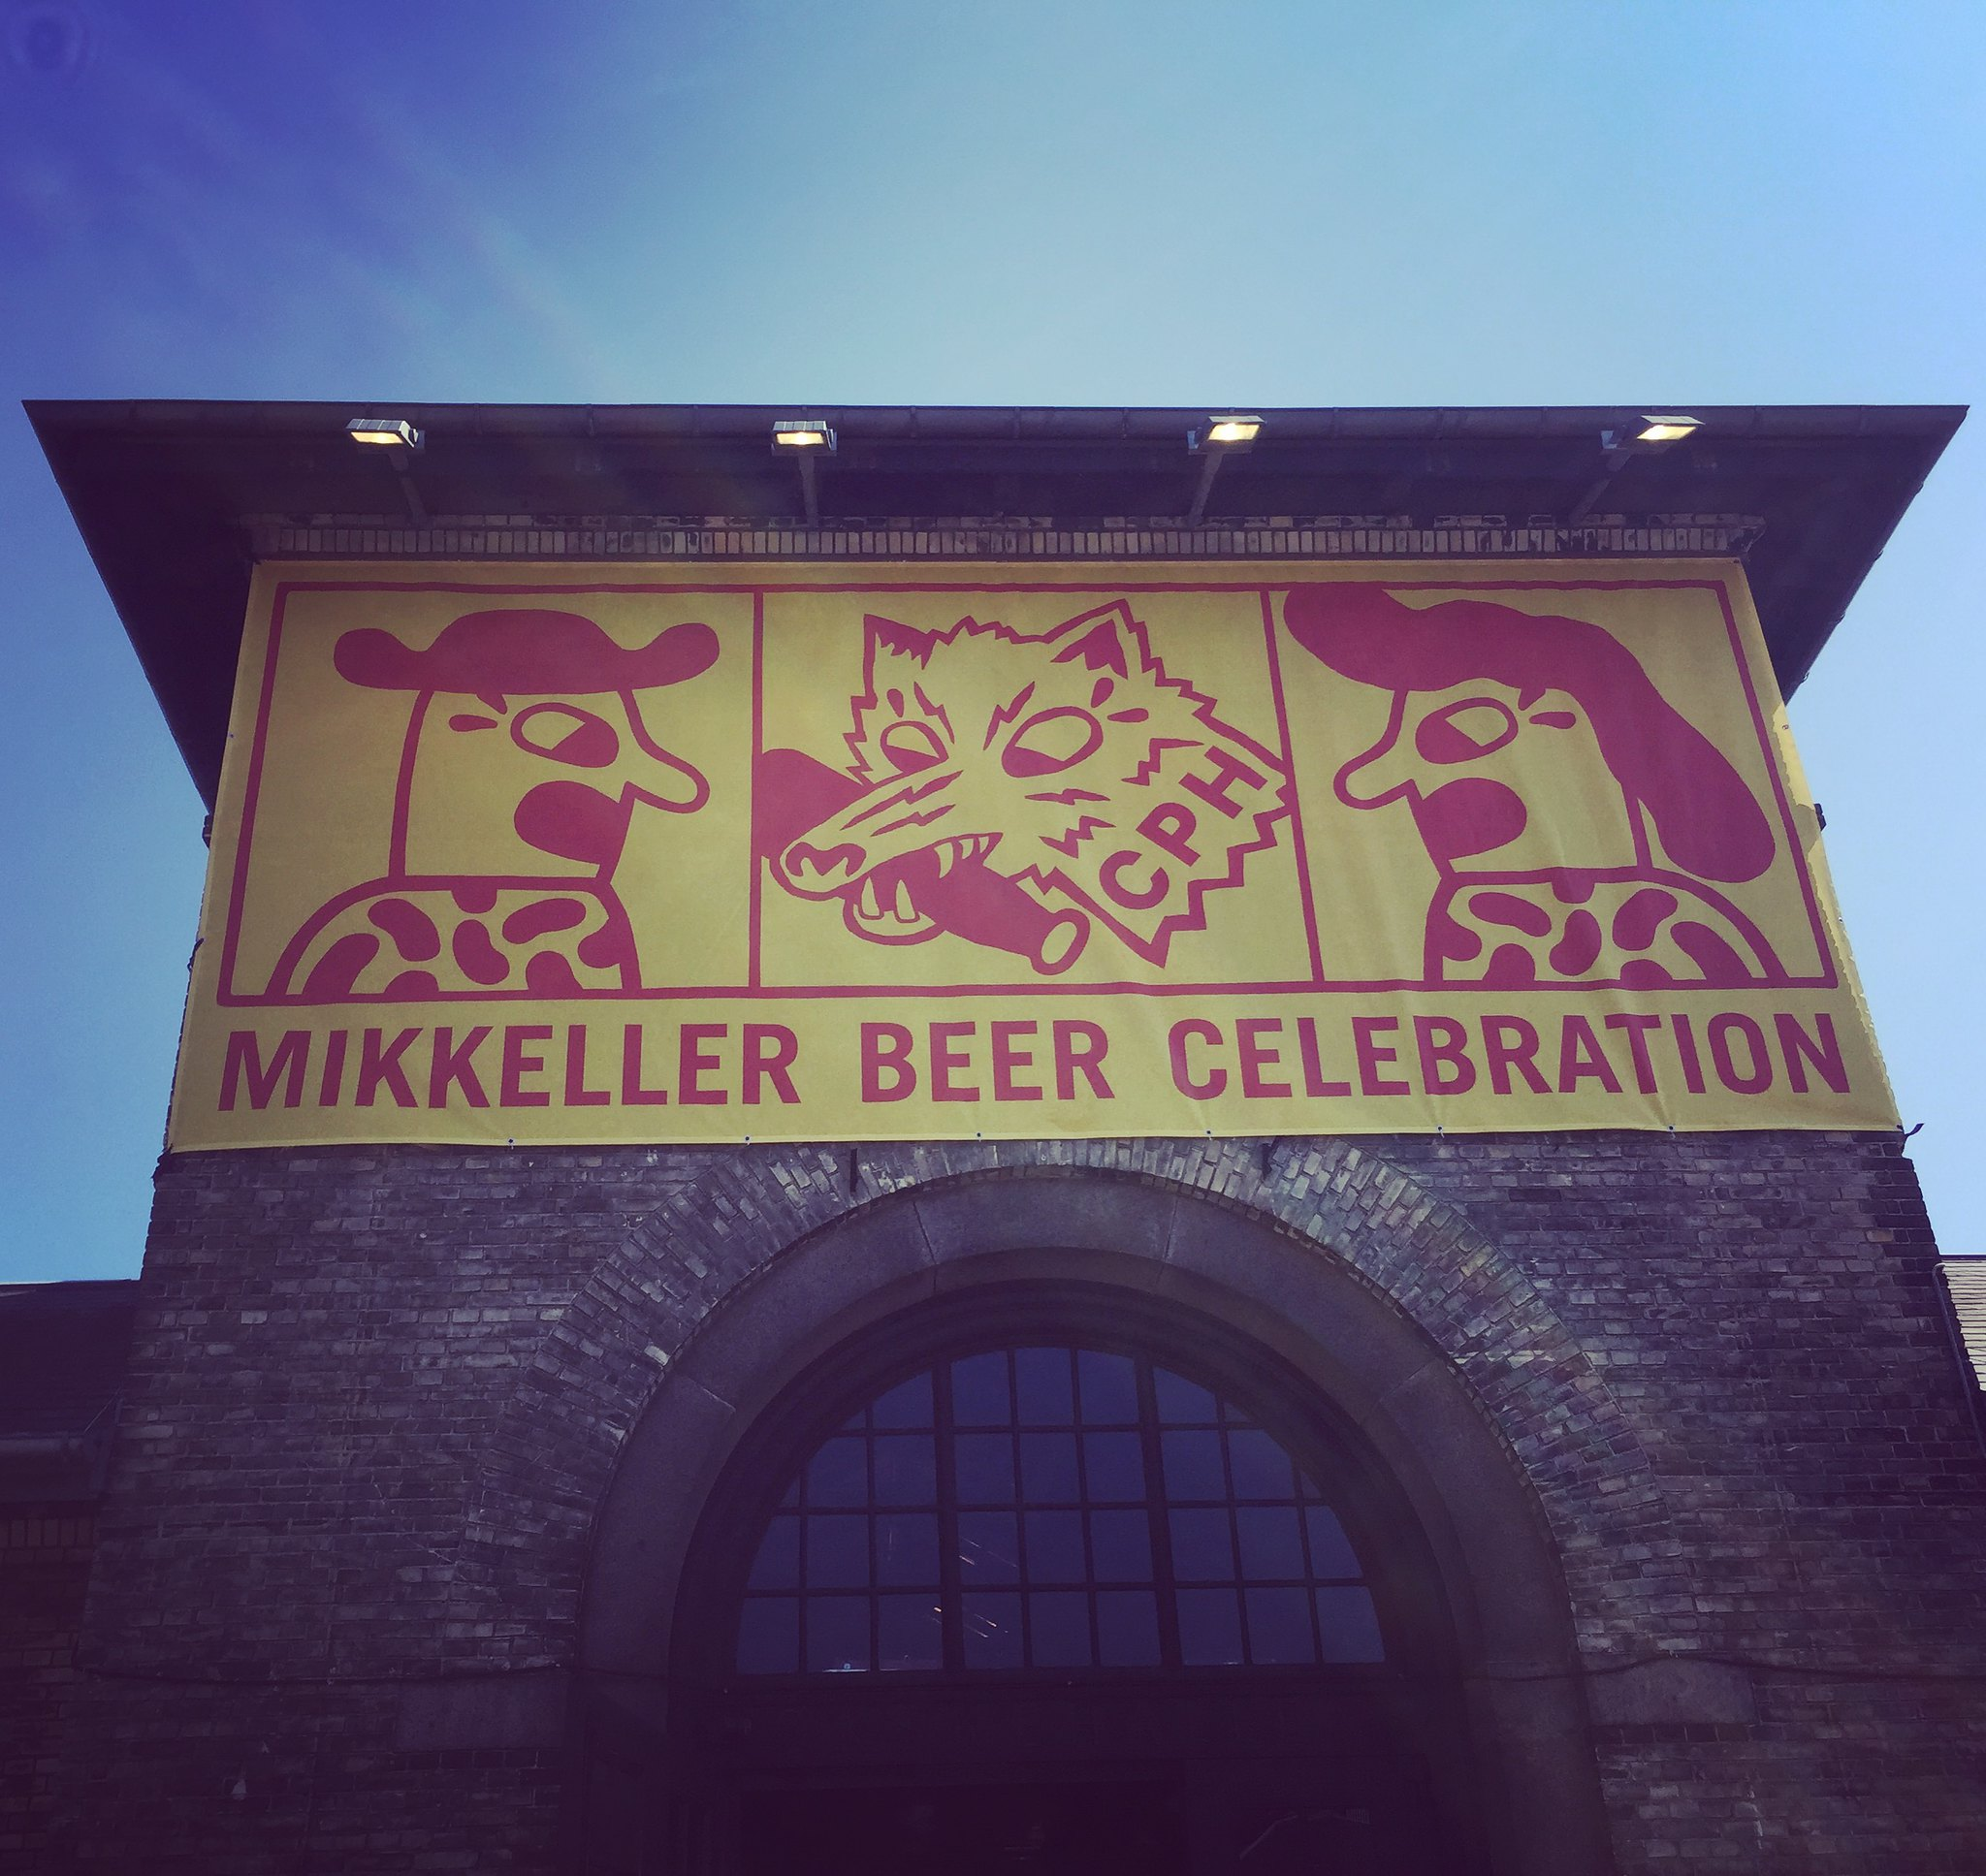 Mikkeller Beer Celebration